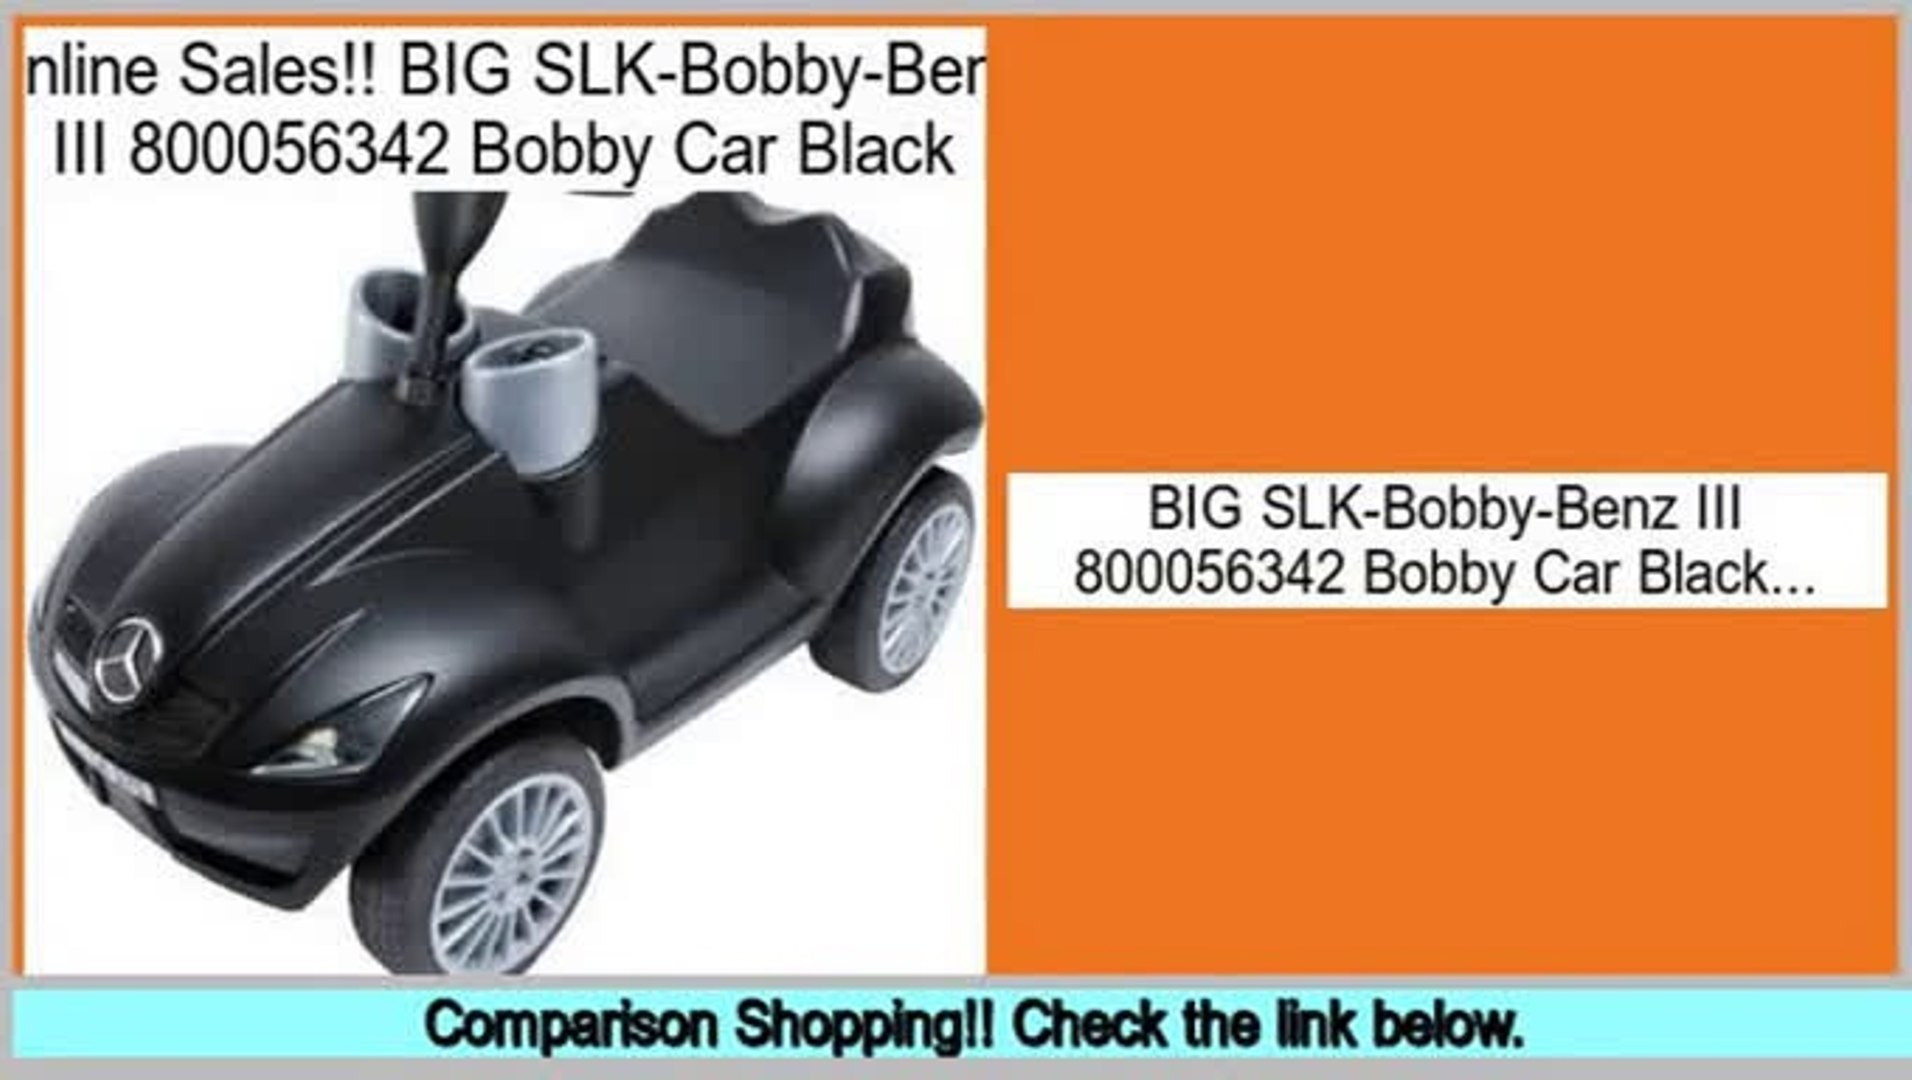 Best Brands BIG SLK-Bobby-Benz III 800056342 Bobby Car Black